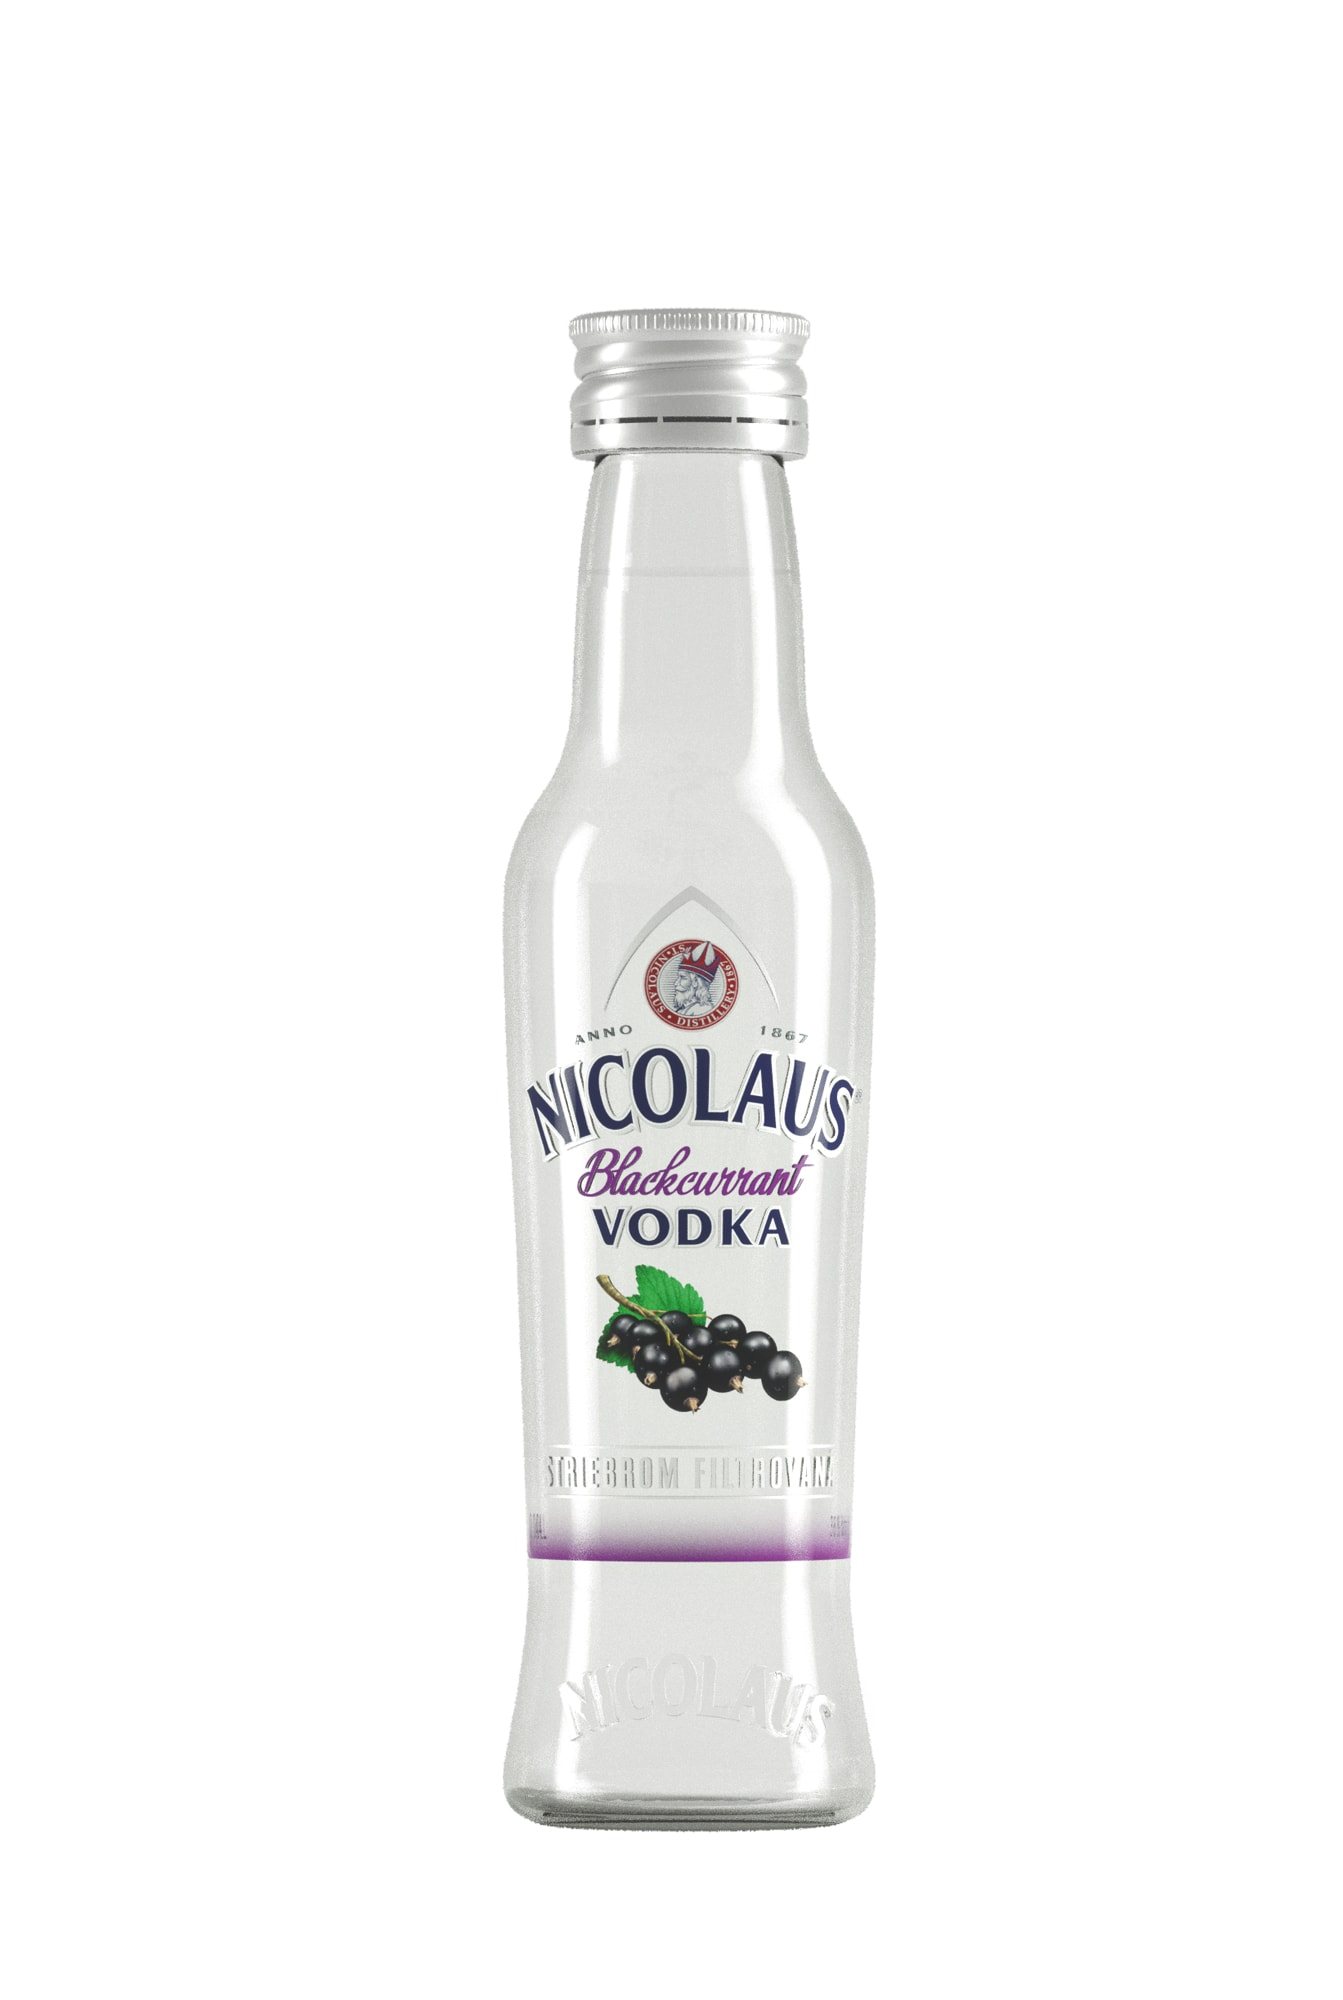 Nicolaus Blackcurrant Vodka 38% 0,04l